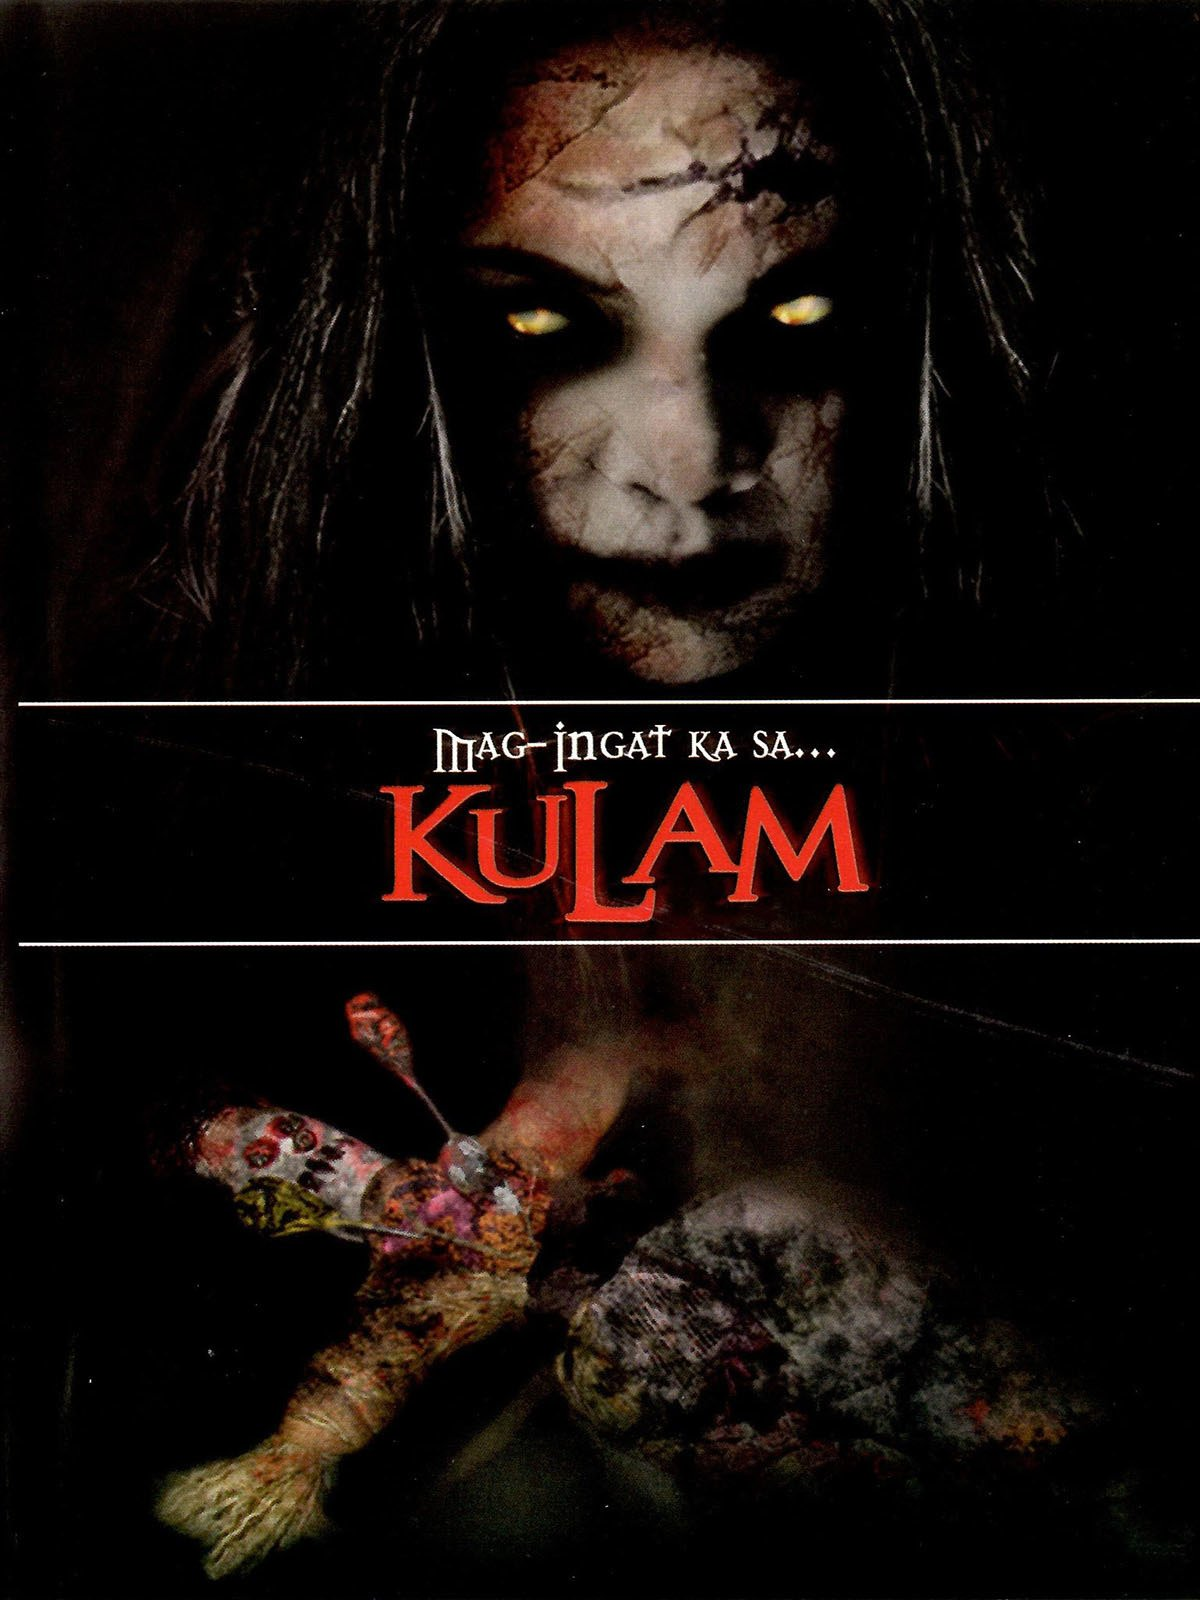 Mag-ingat ka sa... Kulam on Amazon Prime Instant Video UK